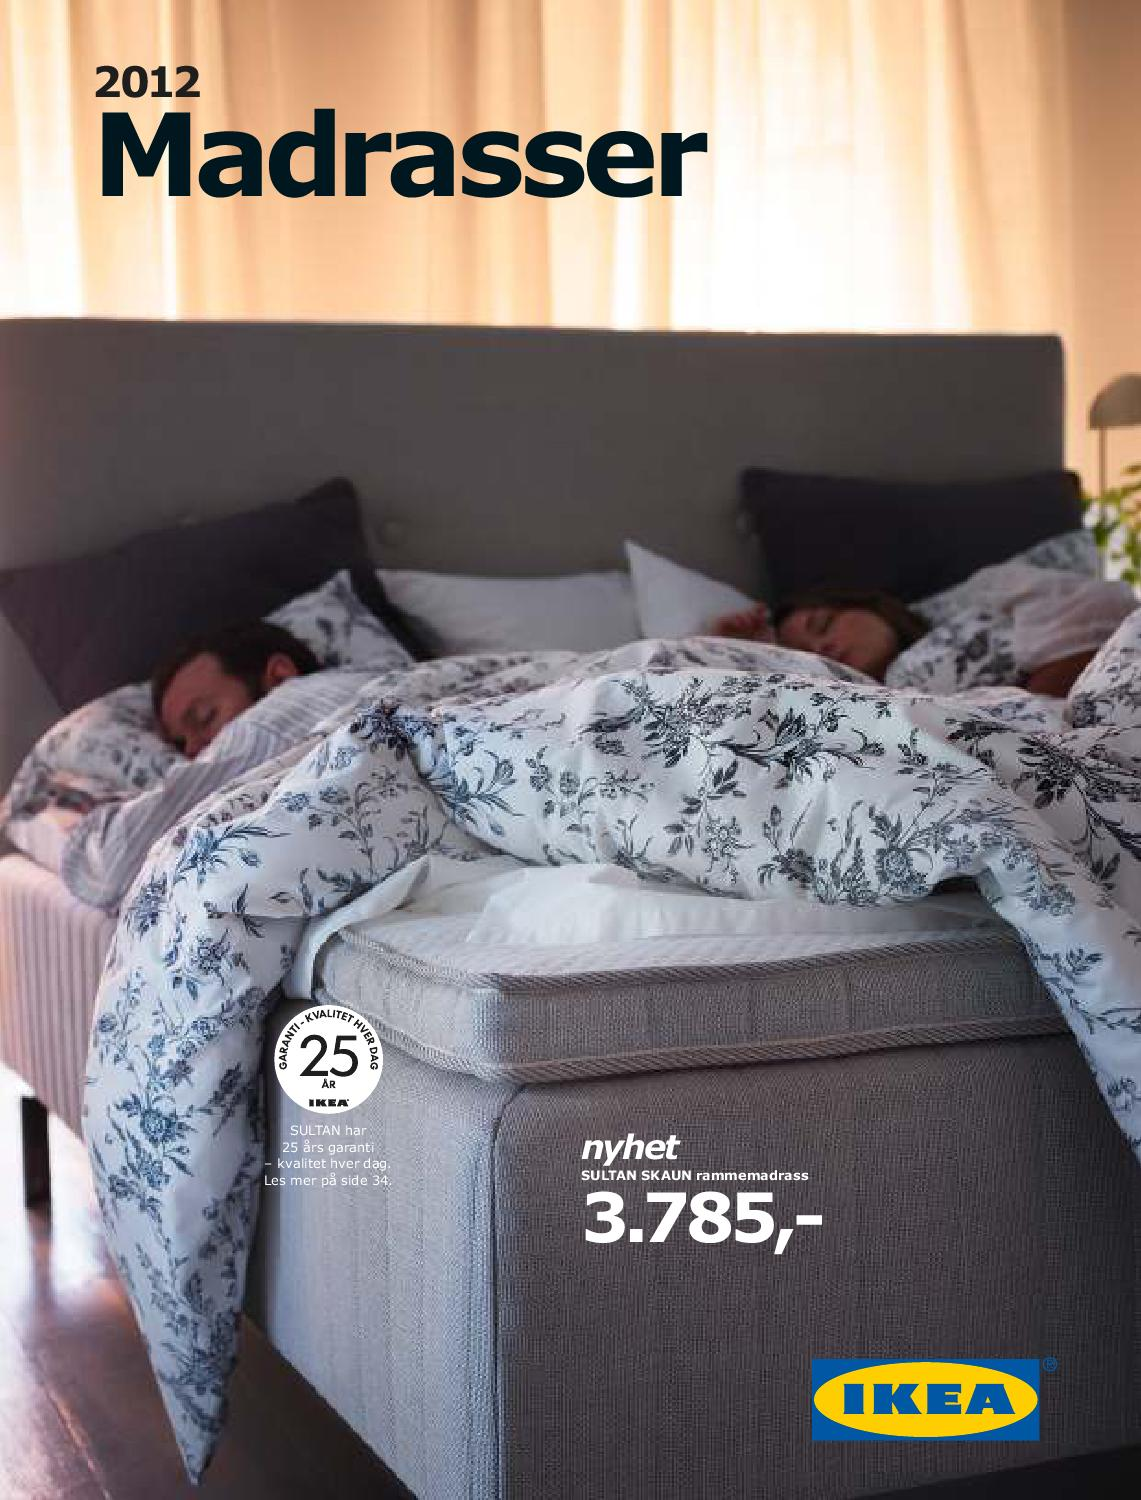 Ikea Madrasser 2012 by Postkassereklame no issuu